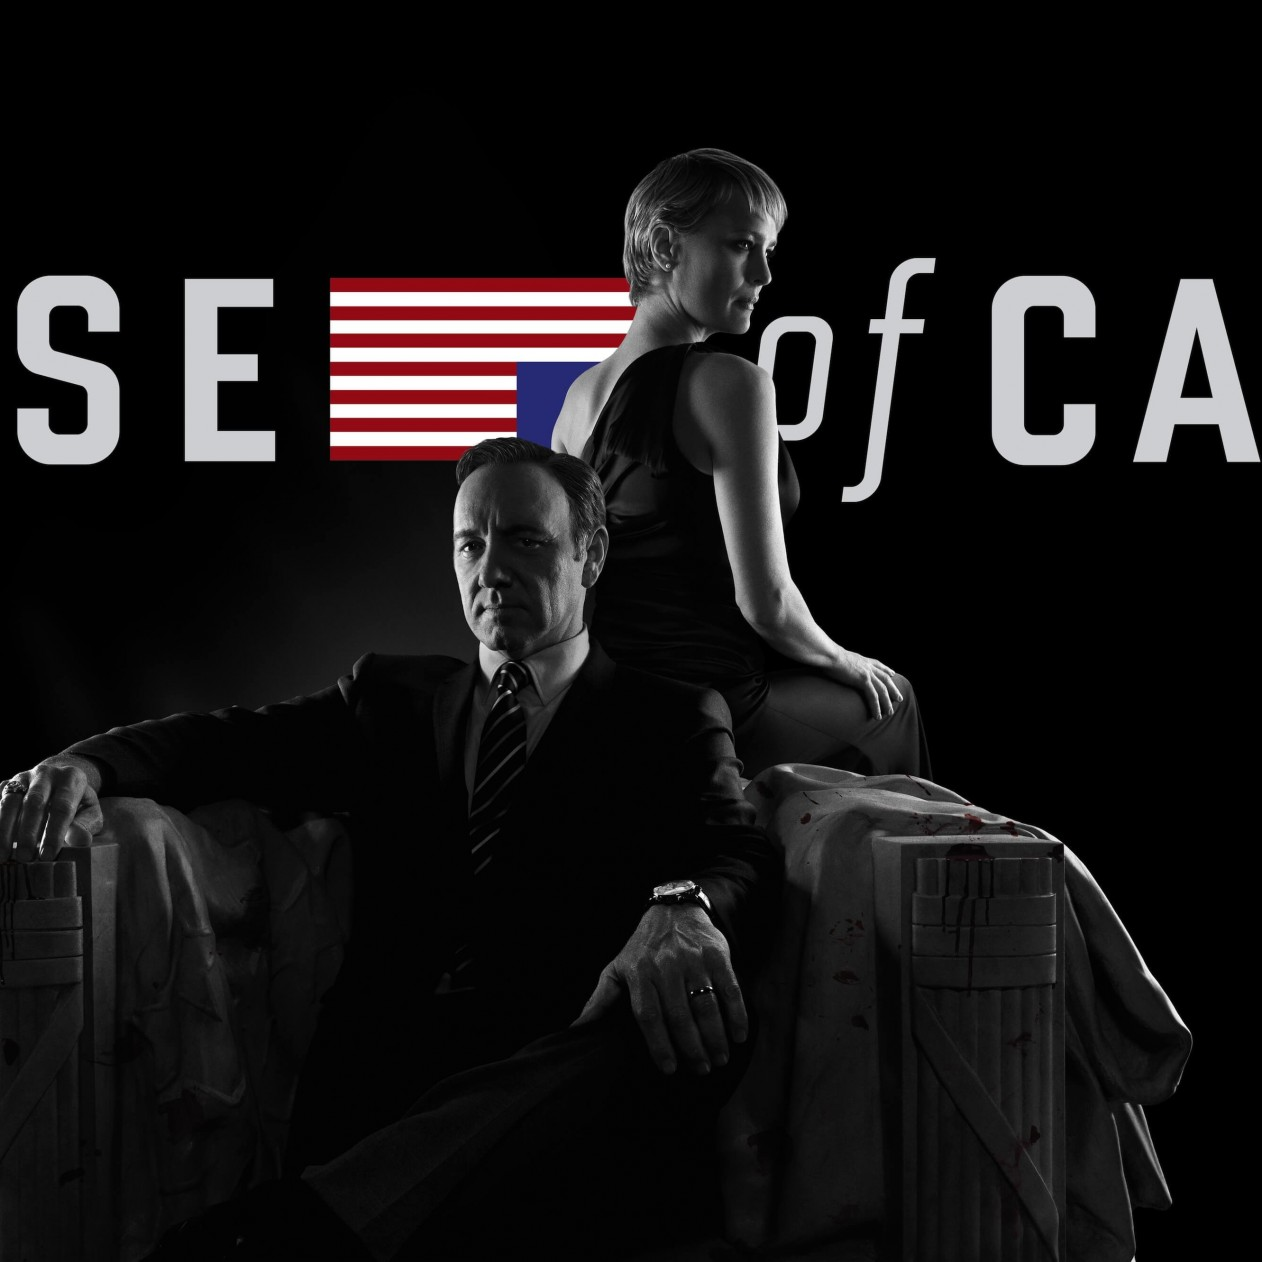 House of Cards - Black & White Wallpaper for Apple iPad mini